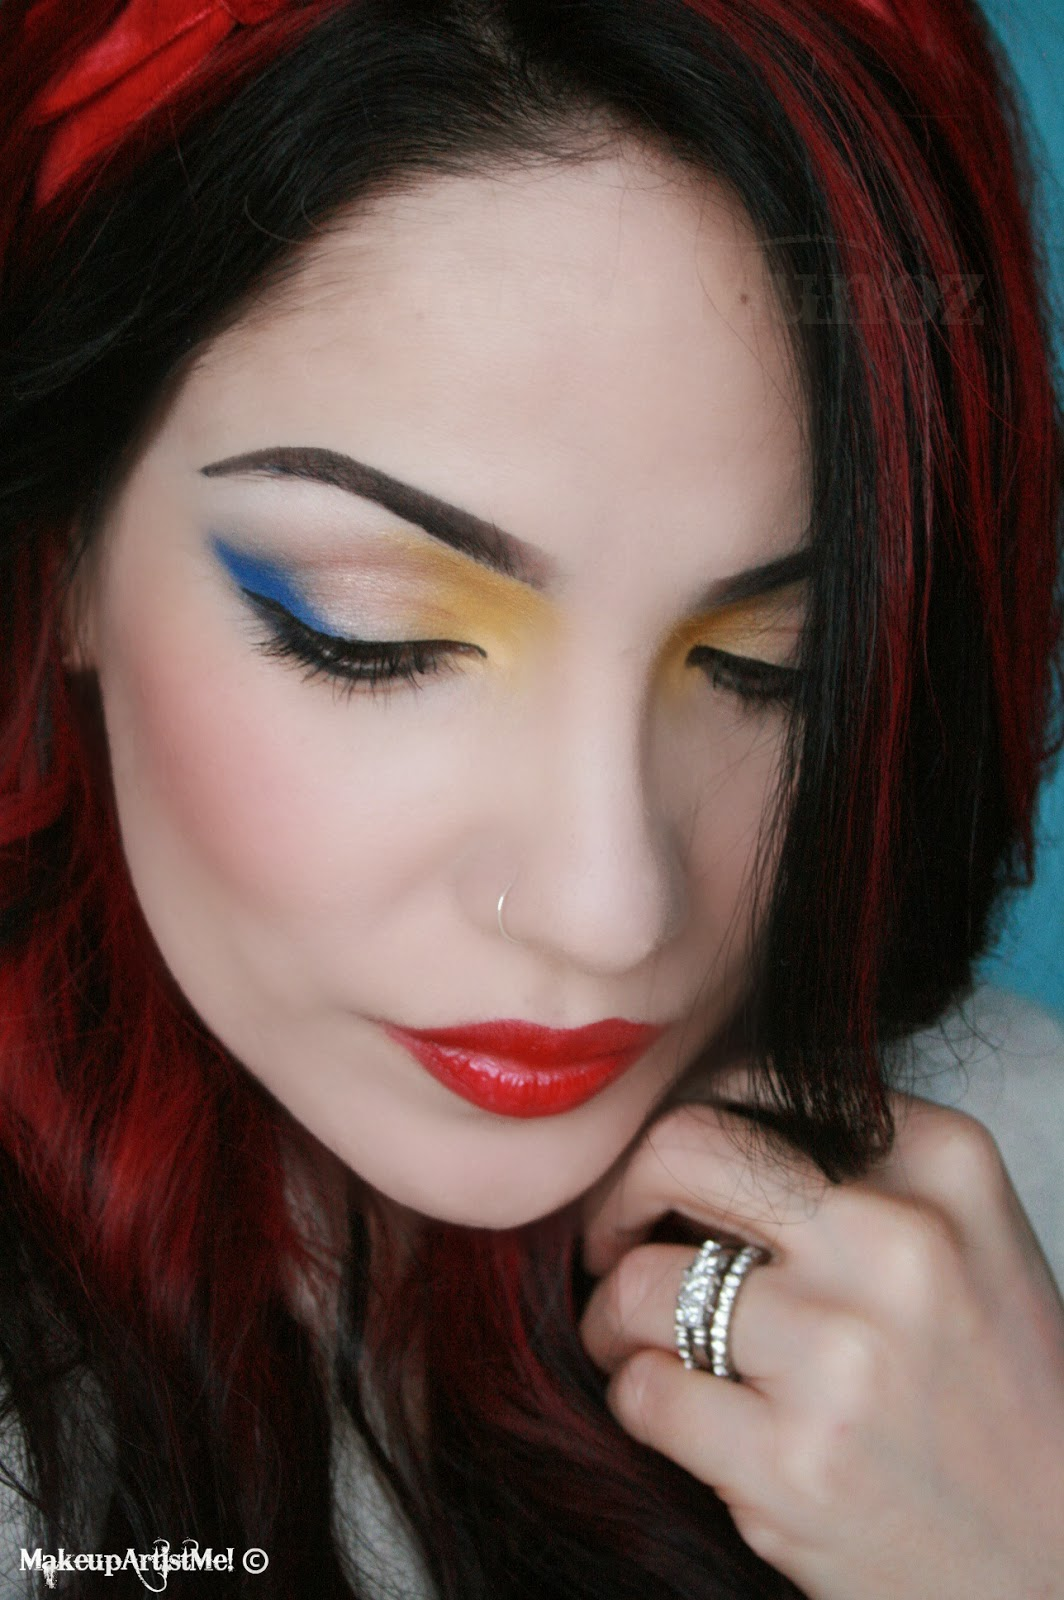 Make Up Lesson For Beginners: Make-up Artist Me!: Like Snow White -- A Snow White